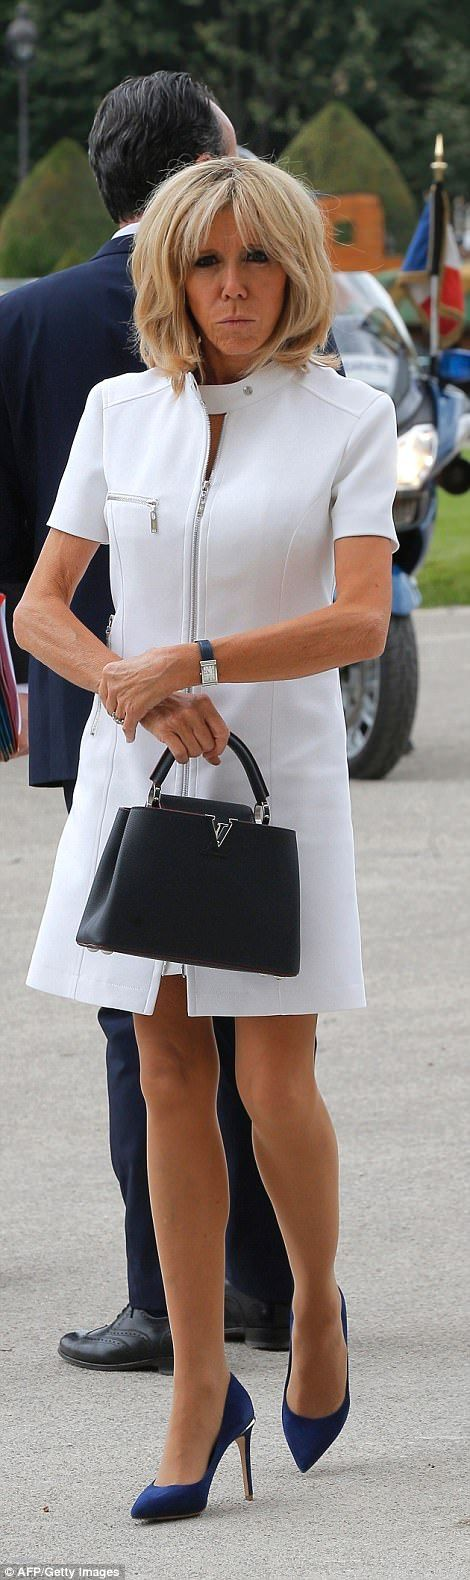 Gallic chic: Brigitte Macron, 64, was in white with blue heels for the welcoming duties. S...